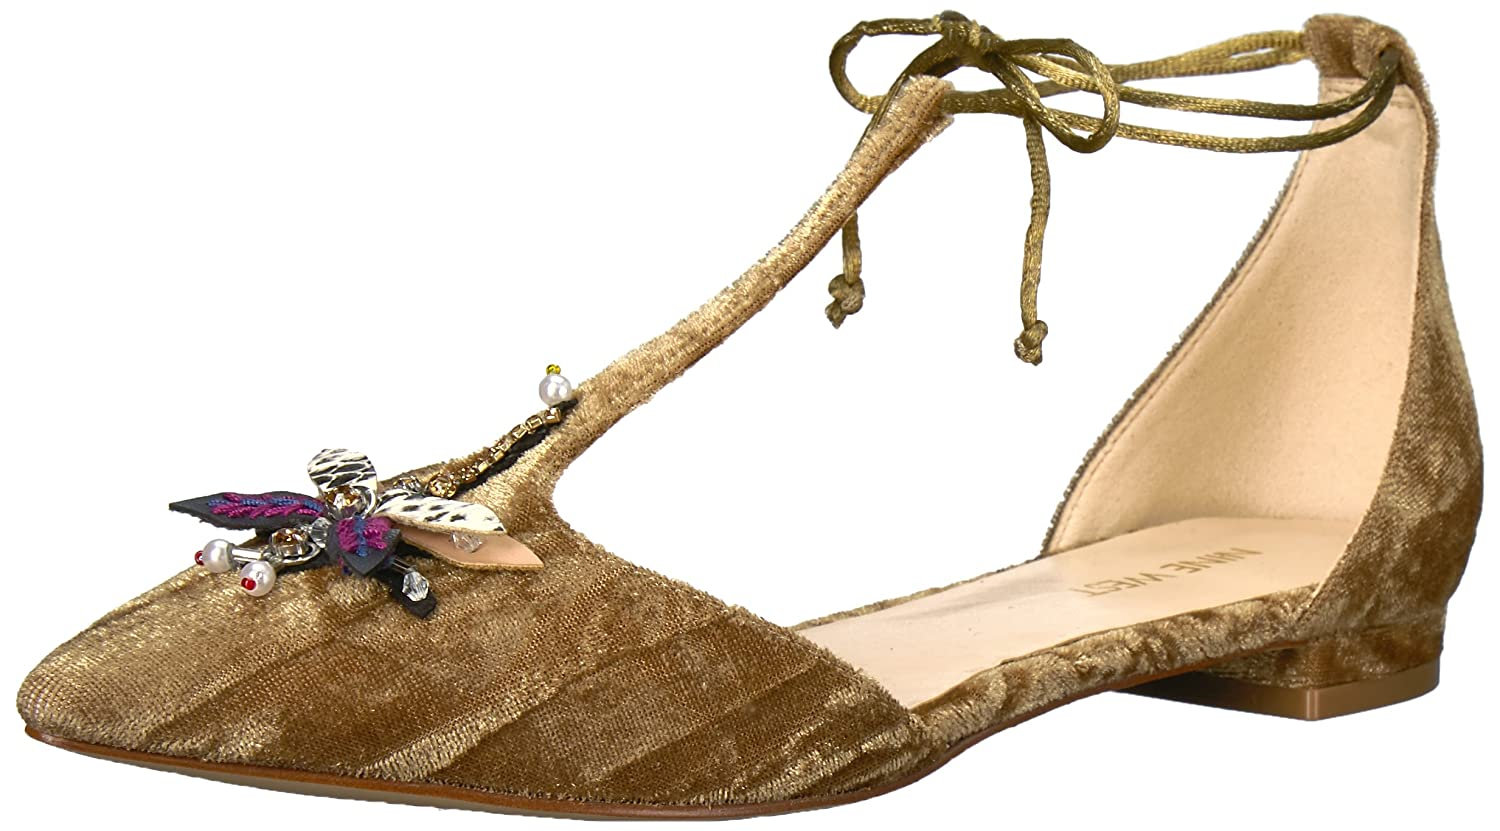 Nine West Women's Amethyst Fabric Pump B073RNFXY6 8 B(M) US|Green